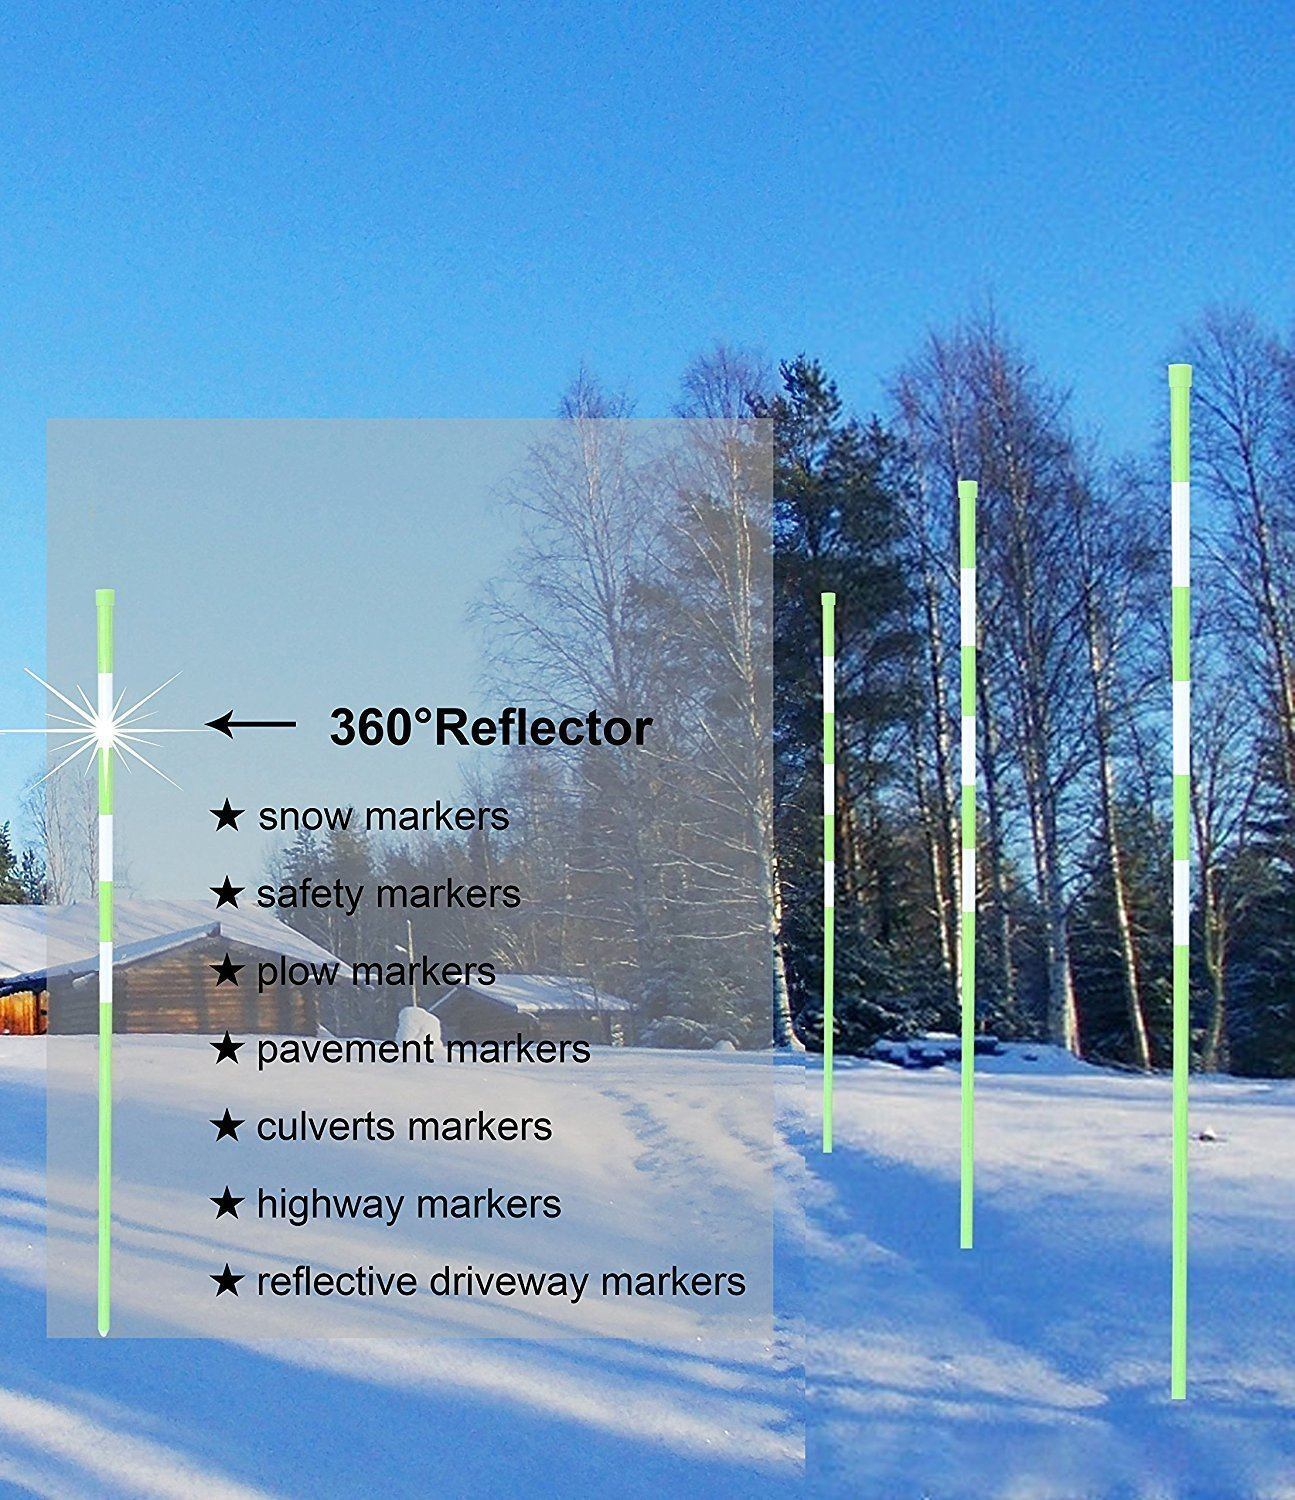 20x Highway Markers 1//4Inchx 48Inch Long Green Reflective Markers